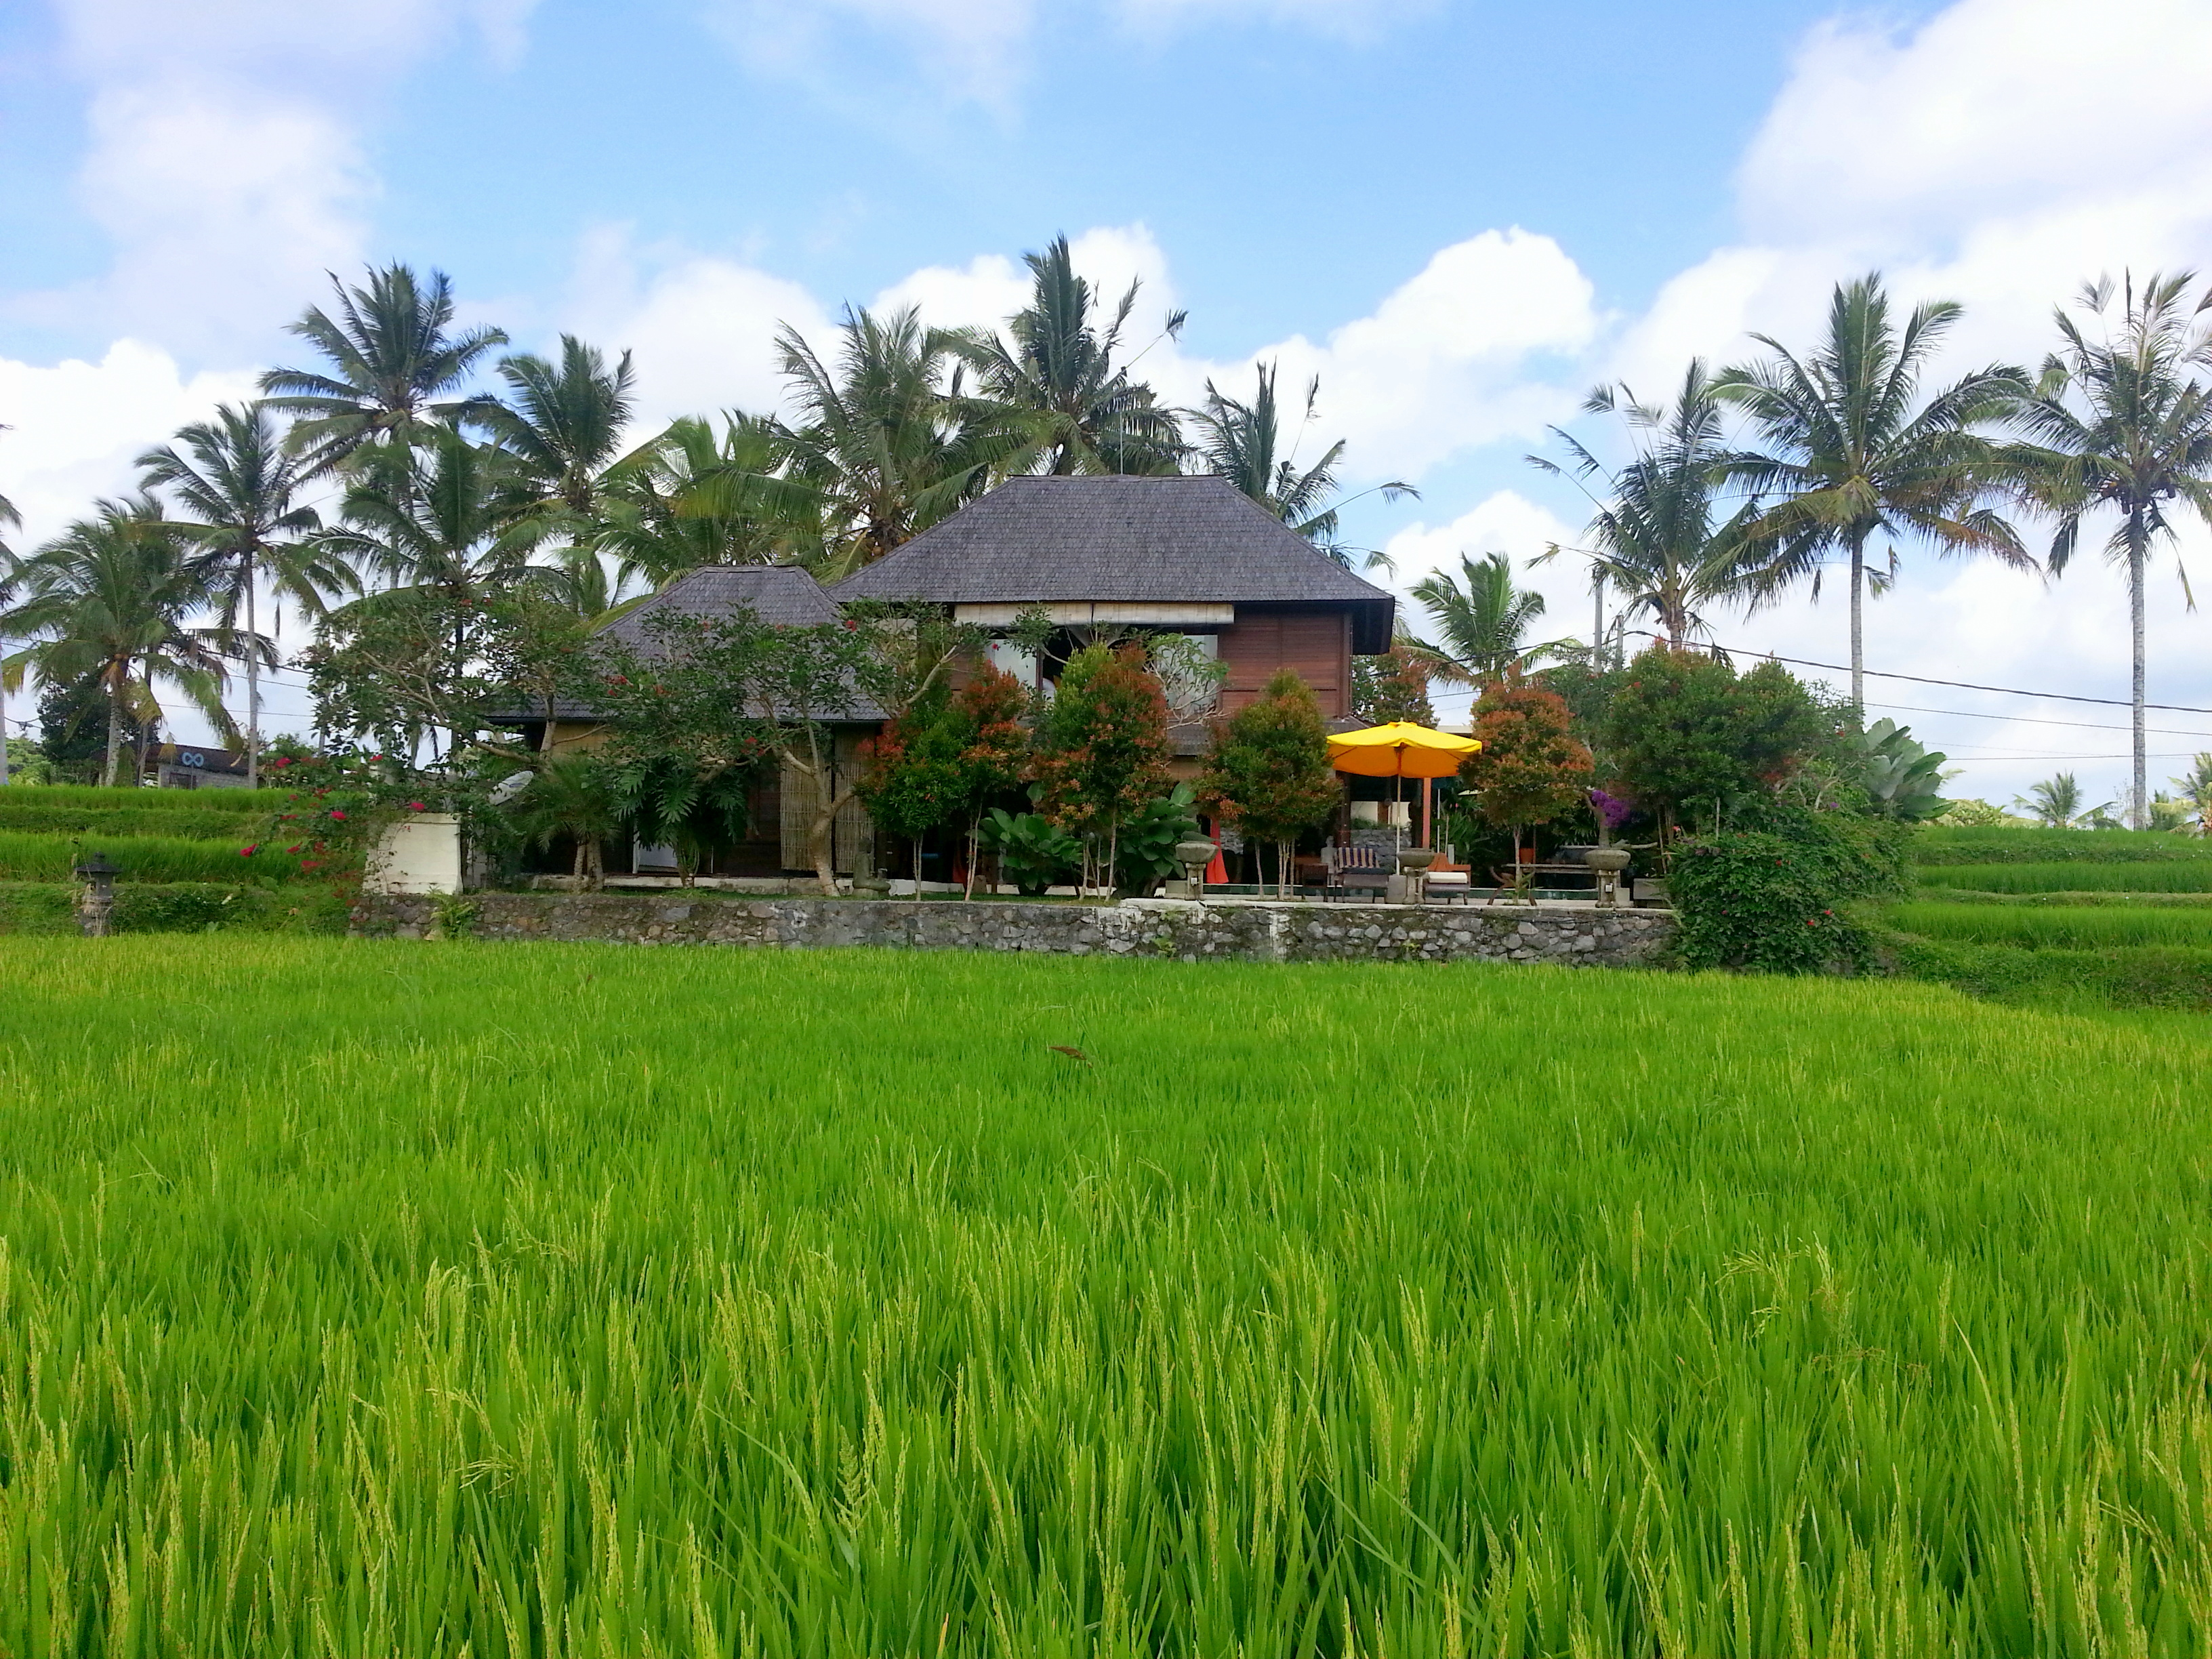 Villa from the rice field